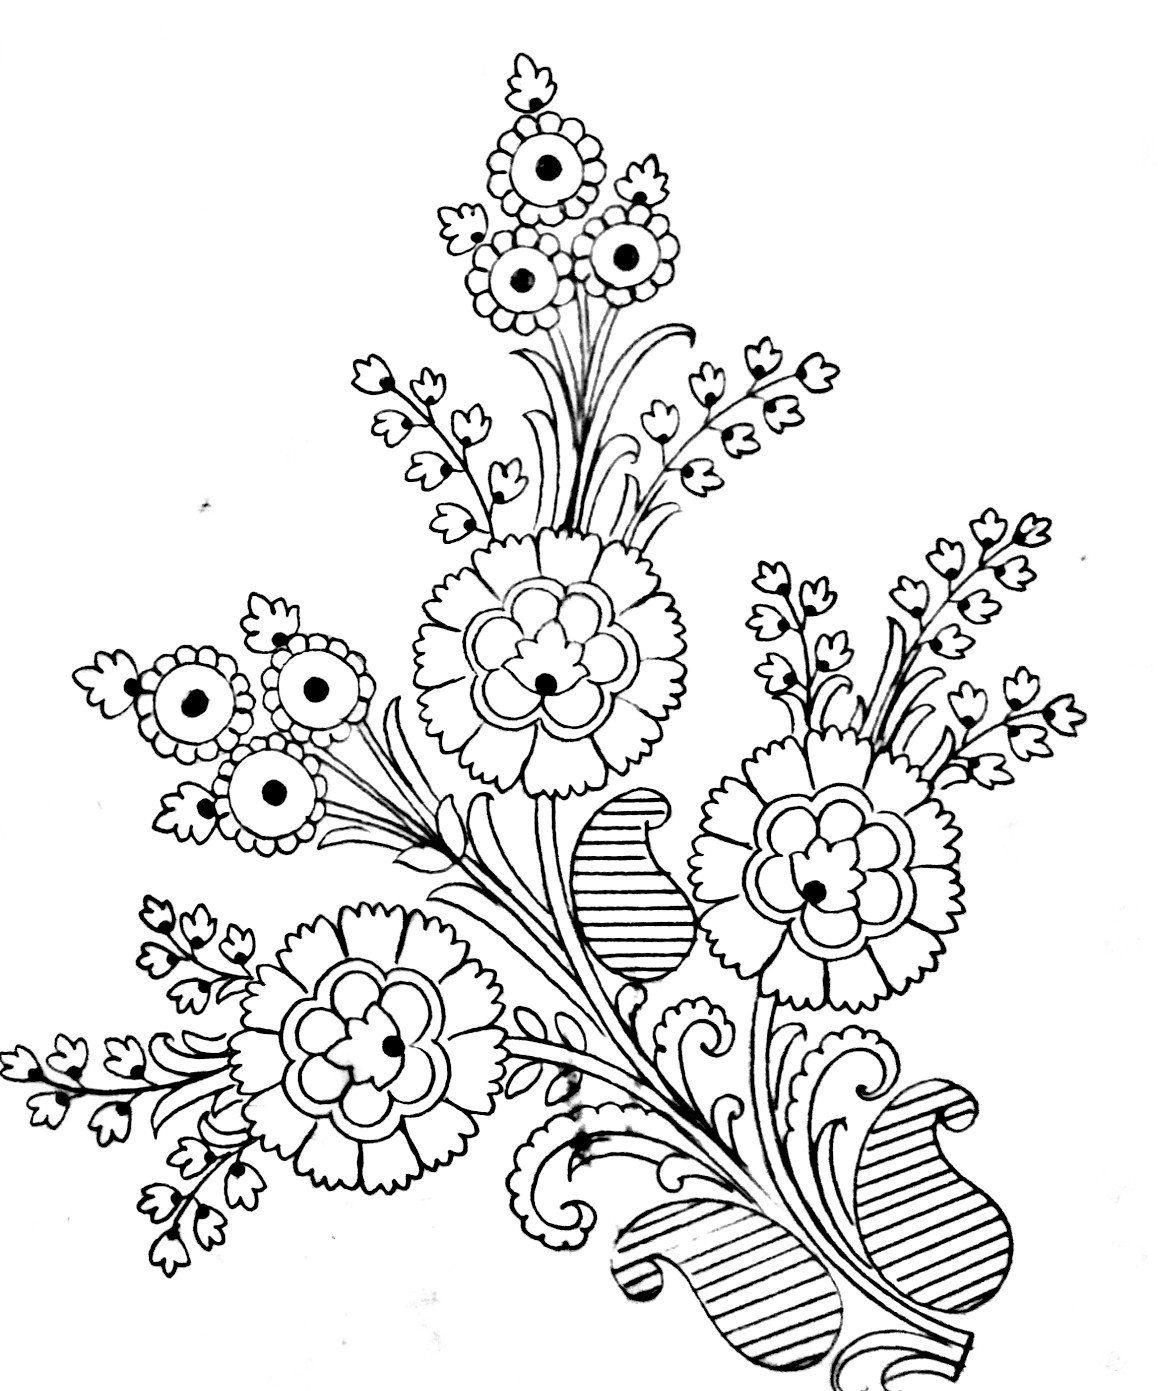 Beautiful flowers designs images free download 2019/2020. Pencil sketch flowers designs pattern of embroidery sarees.